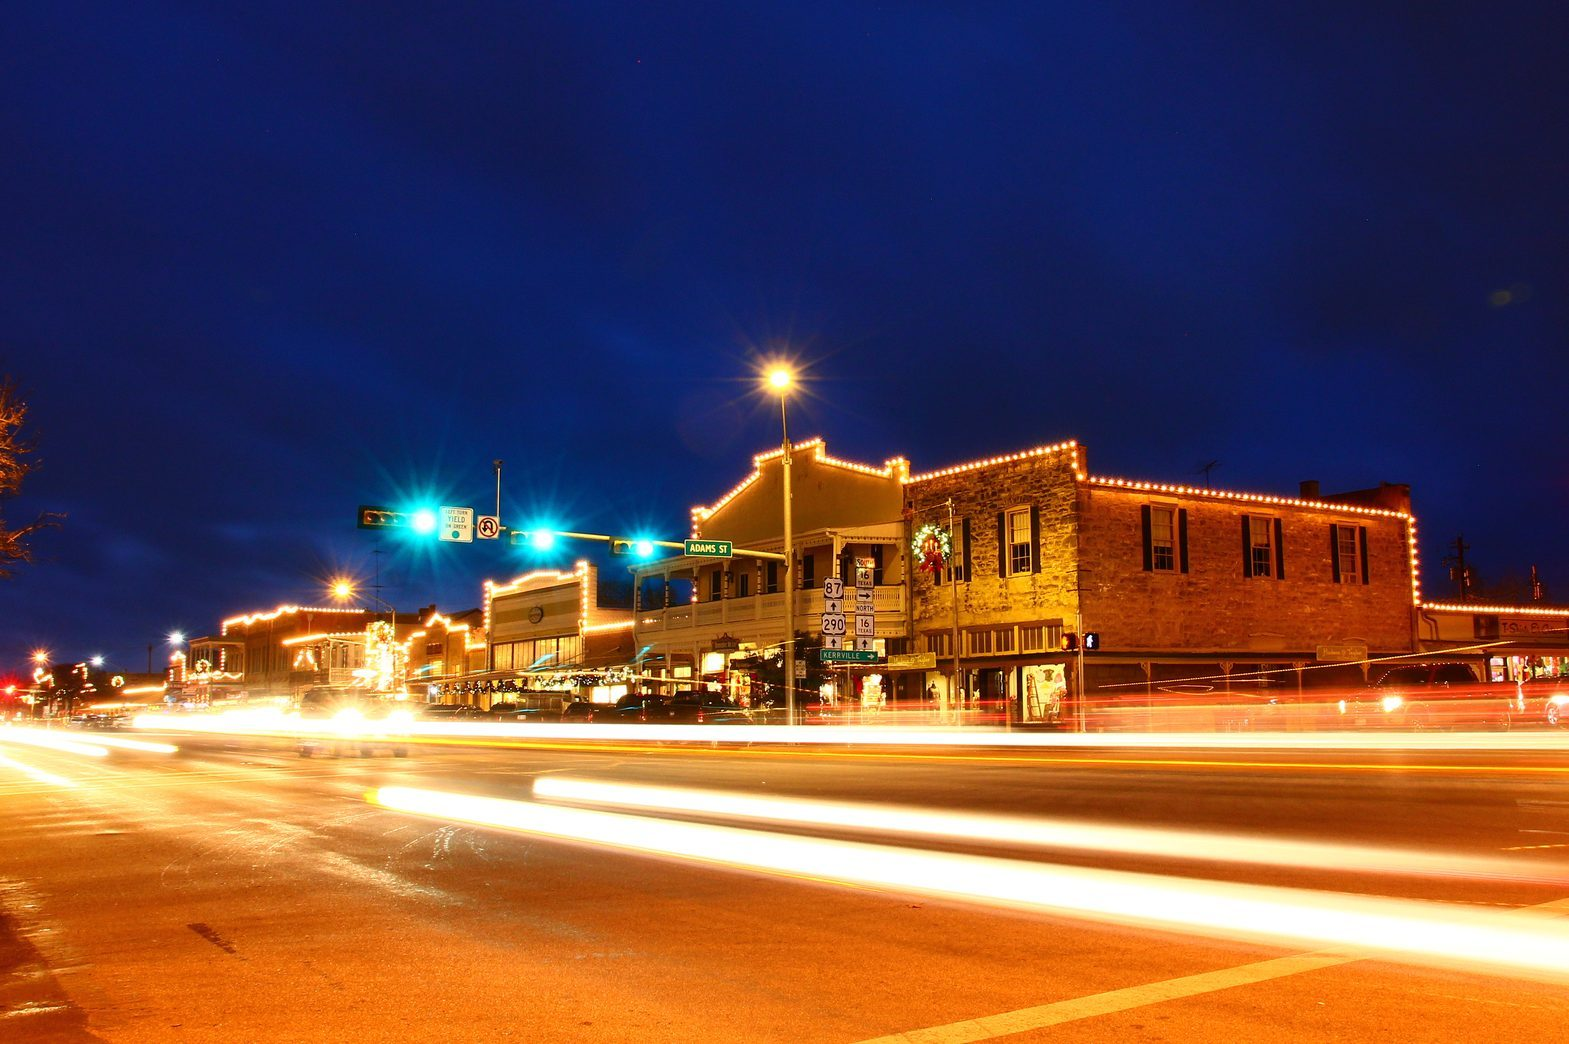 Beautiful city night scape of road and land transportation against lighting in Fredericksburg of Texas